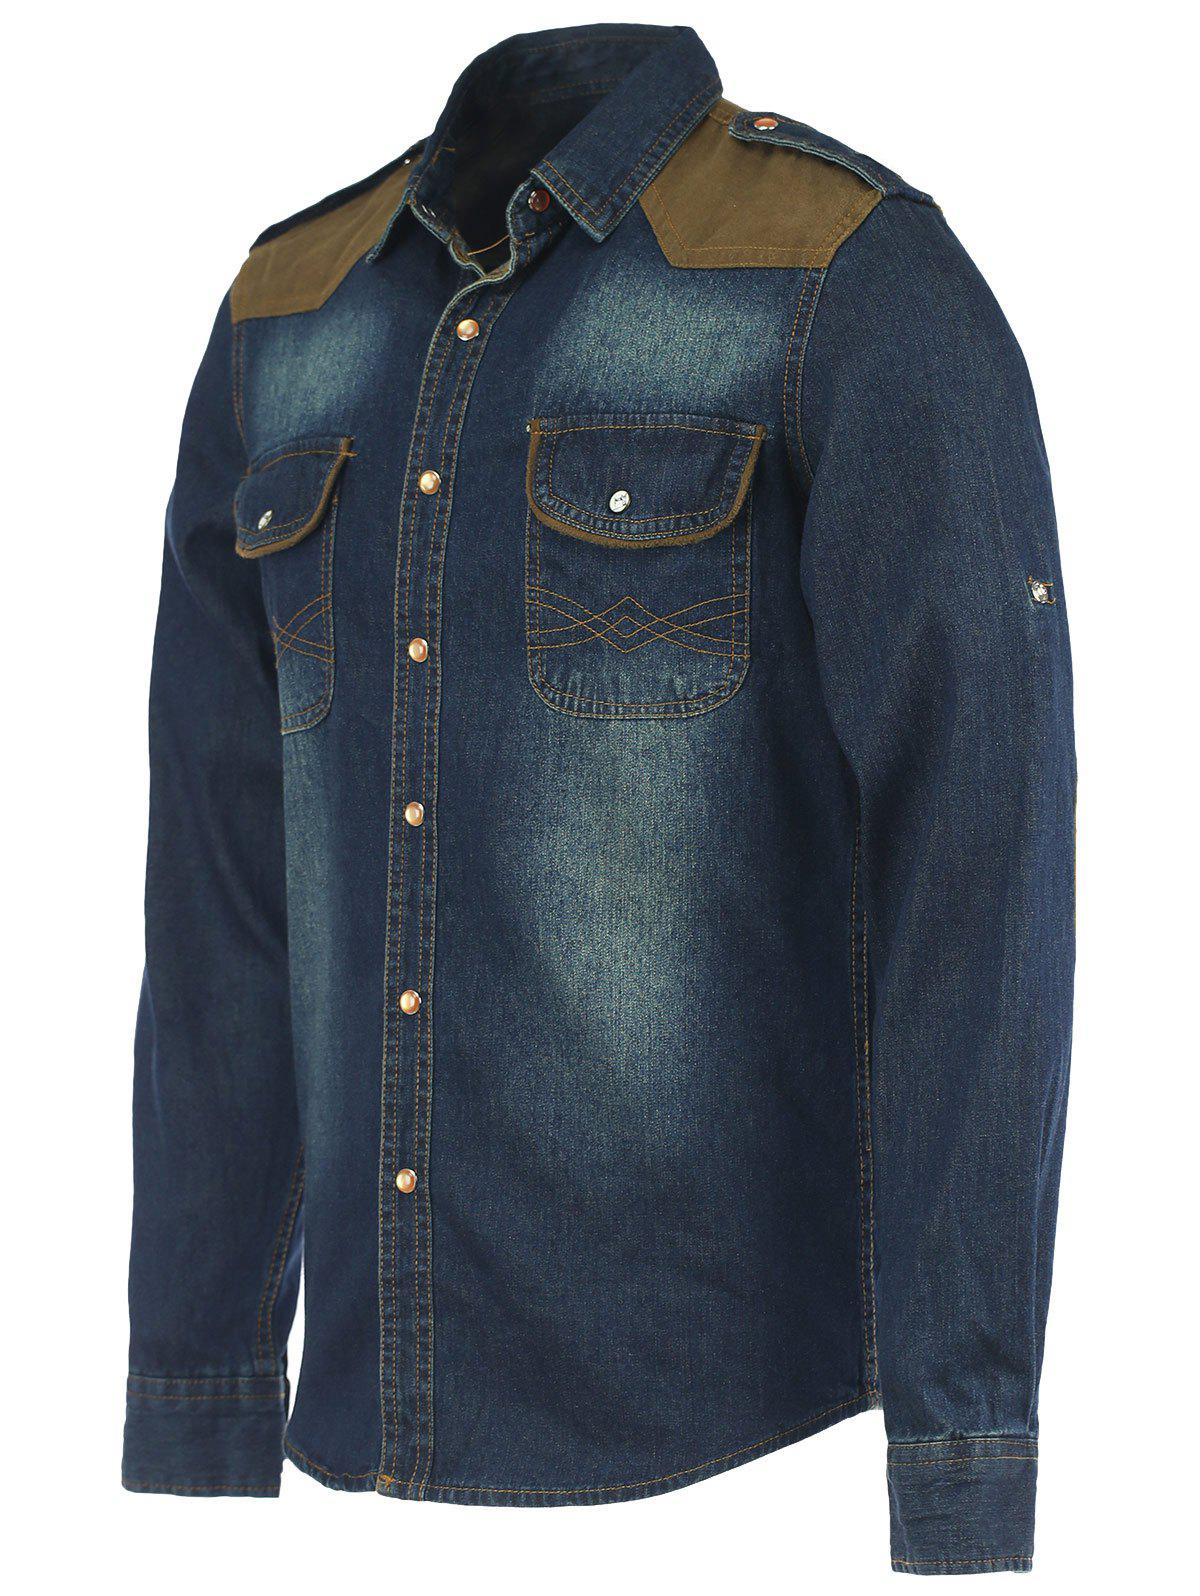 Epaulet Suede Spliced Long Sleeve Denim Shirt - DEEP BLUE M